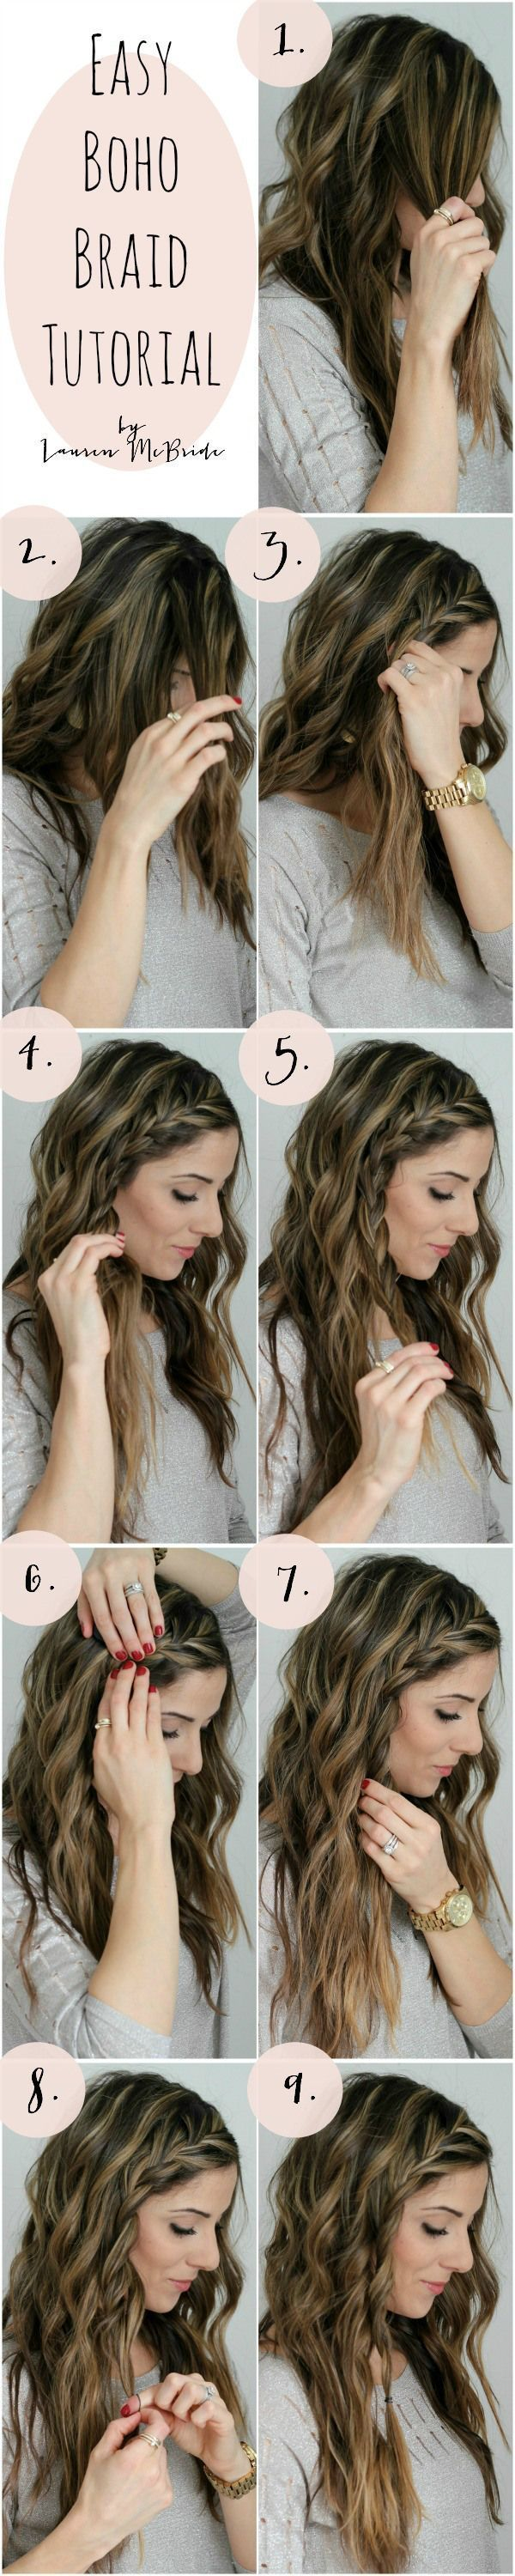 Easy Boho Braid Tutorial. Perfect for those days when you need a quick and easy hairstyle. #braid #beauty #hair: